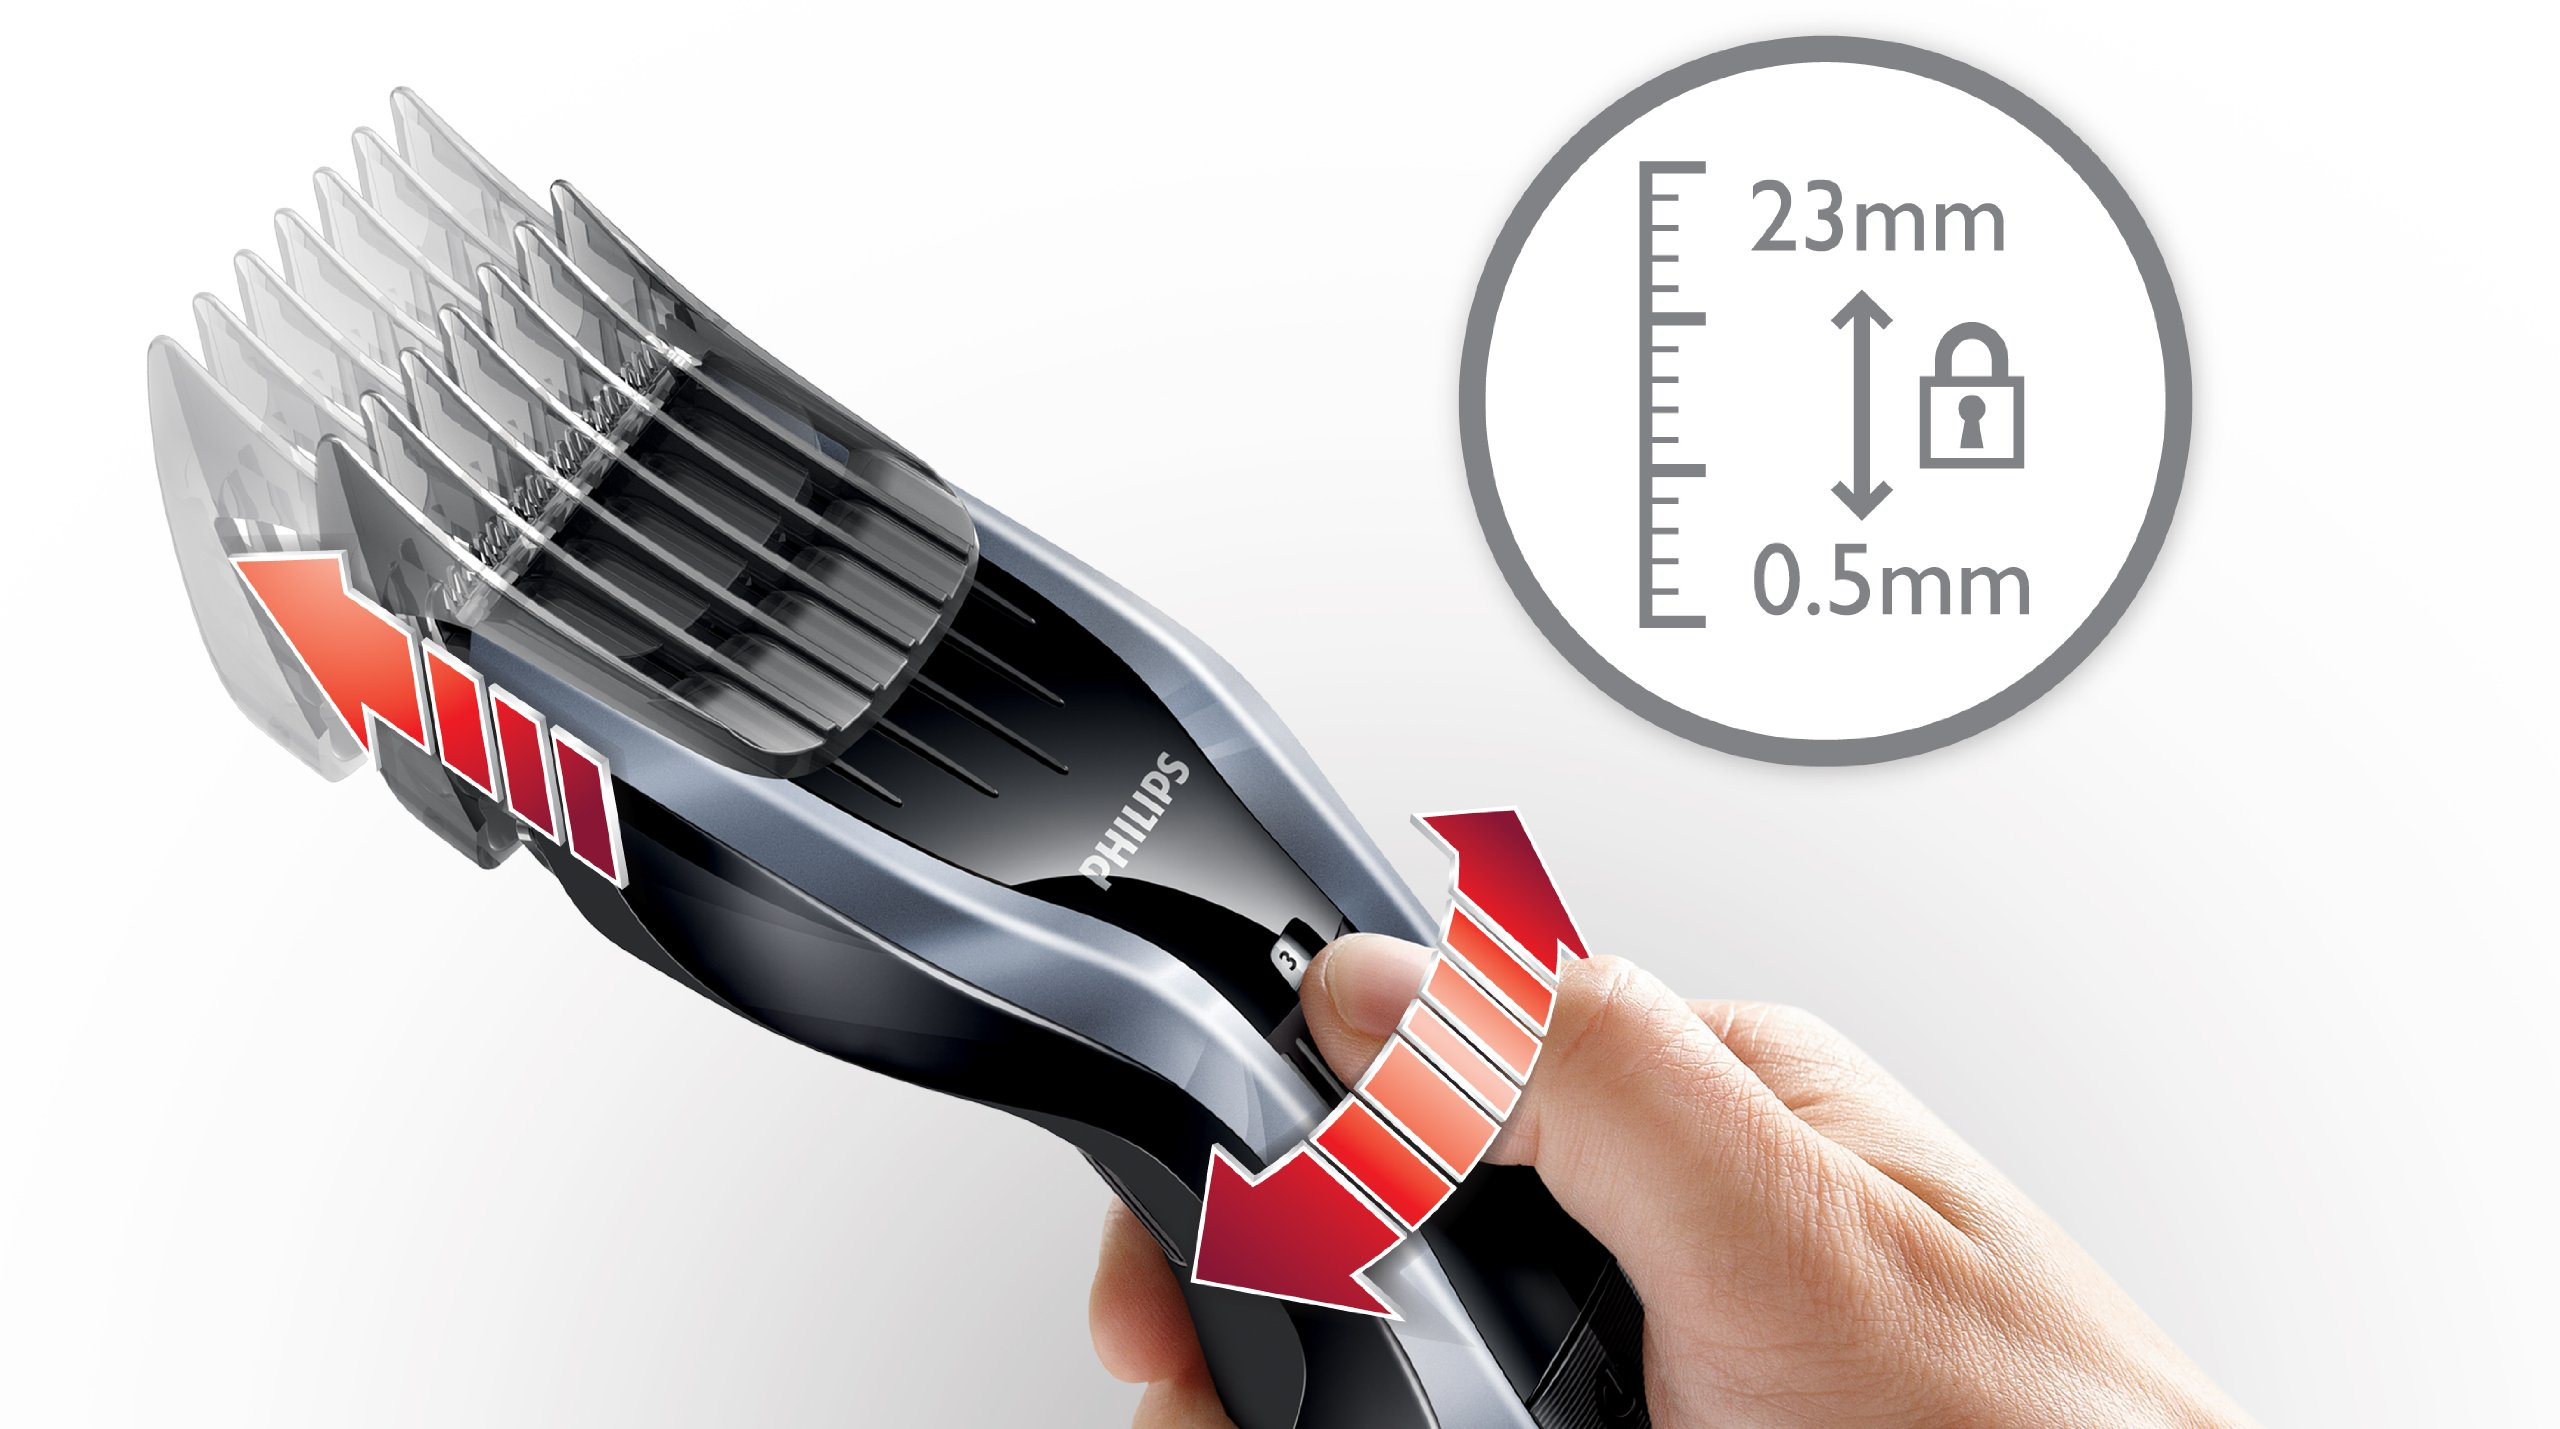 Philips Series 5000 Hair Clipper HC541083 With DualCut Technology And Beard Comb Attachments